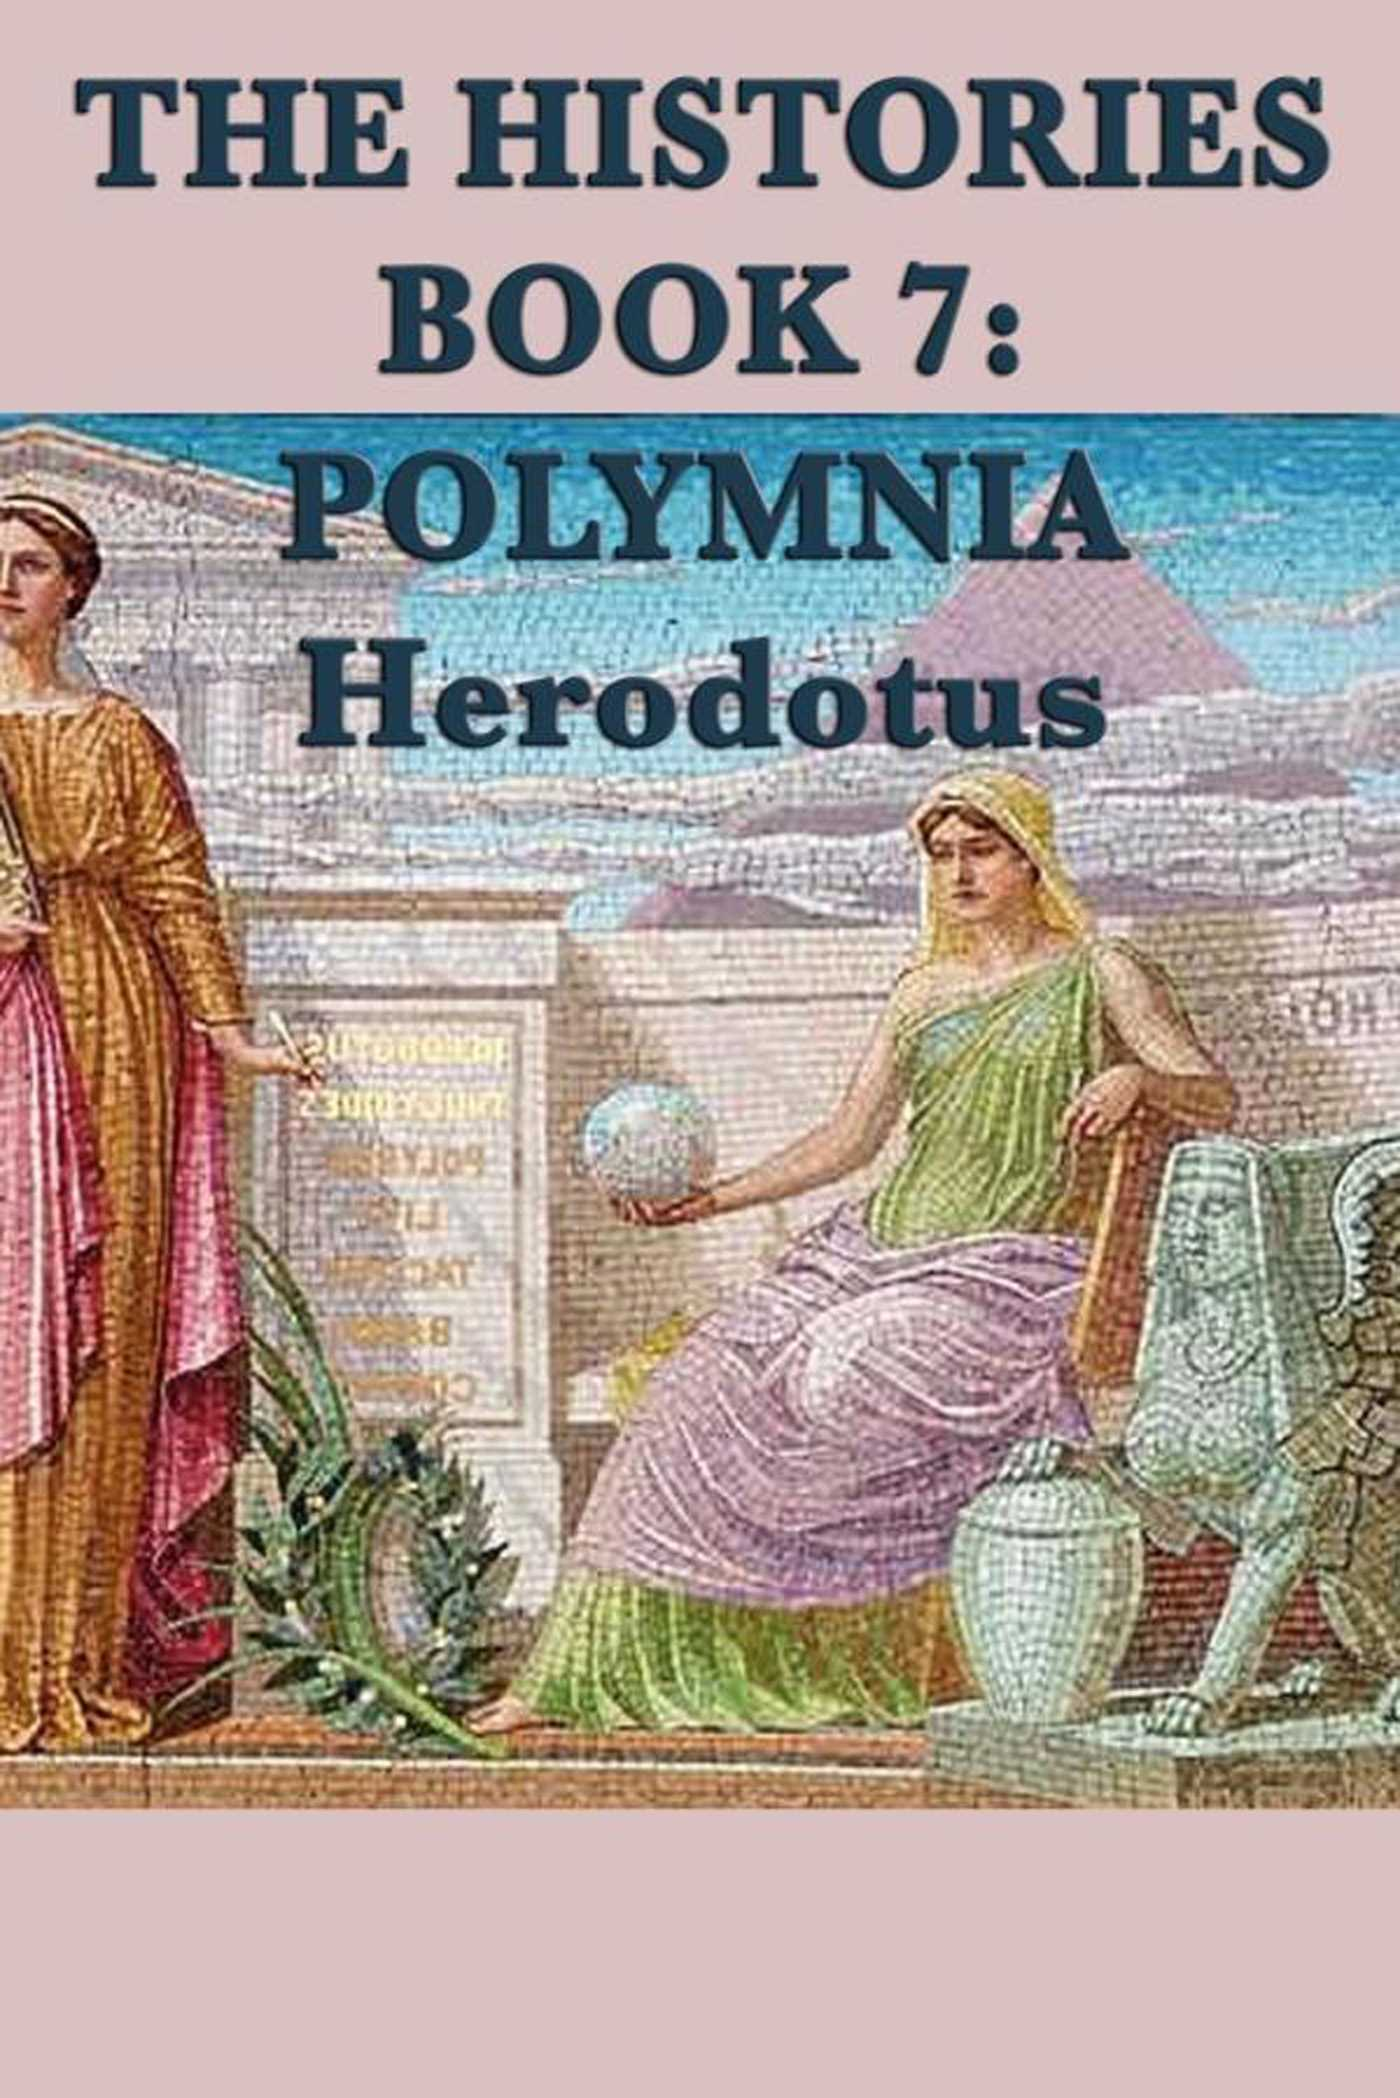 The histories book 7 polymnia 9781625580467 hr